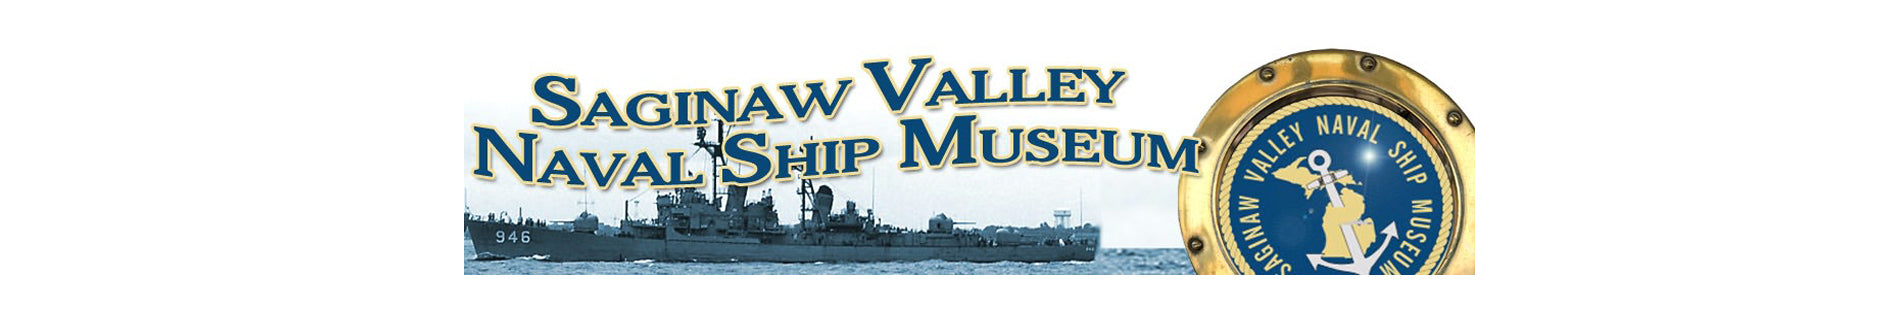 Saginaw Valley Naval Ship Museum, Home of the USS Edson